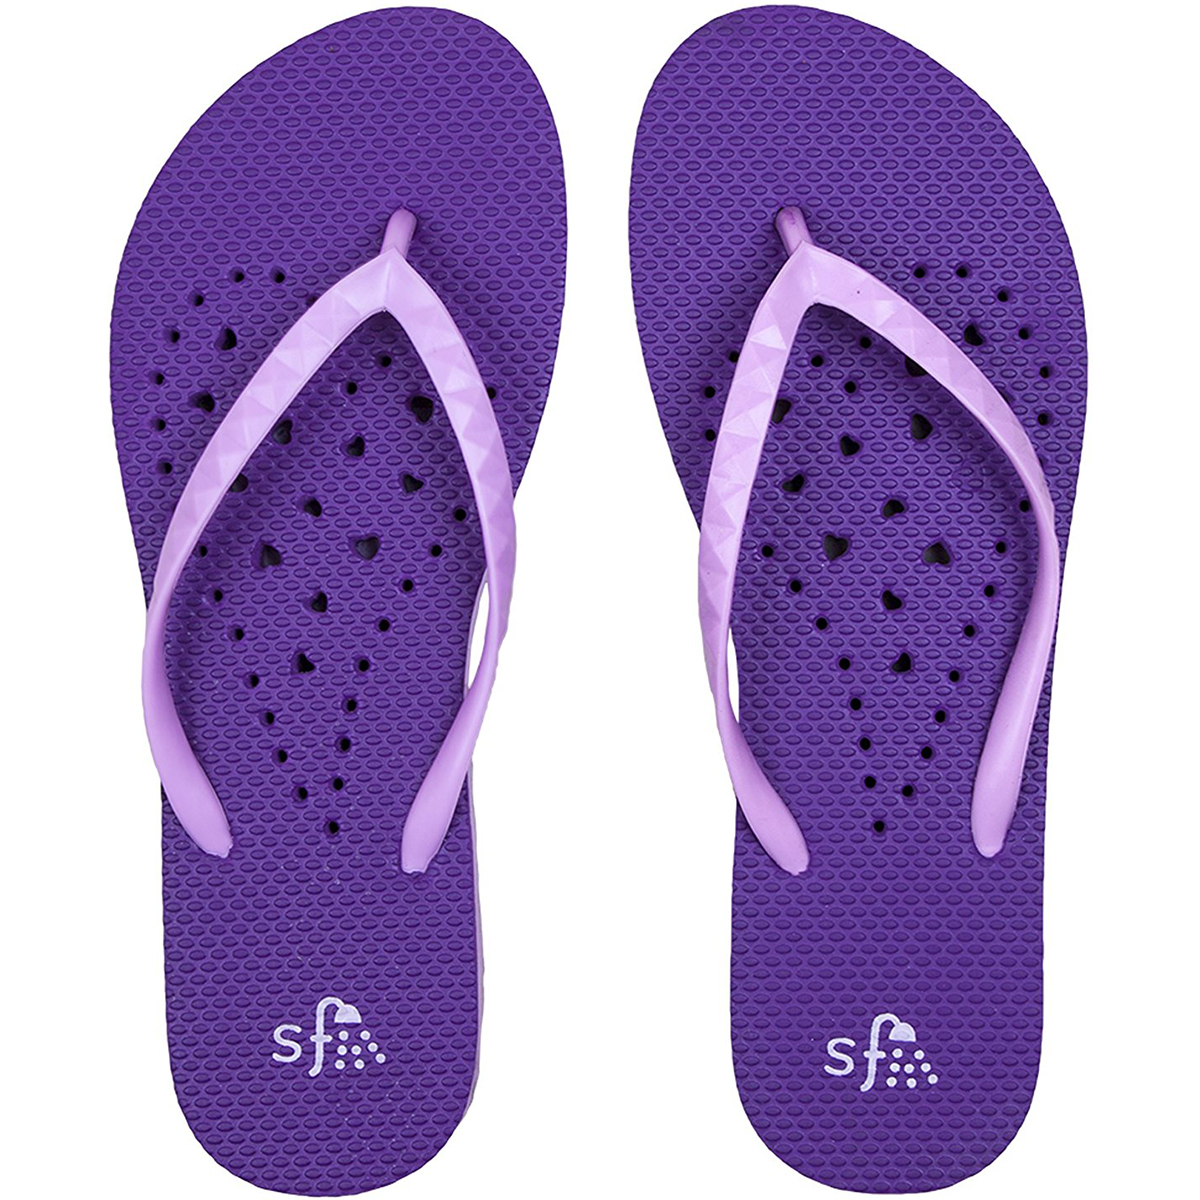 Showaflops Women's Antimicrobial Shower and Water Sandals - Violet Hearts